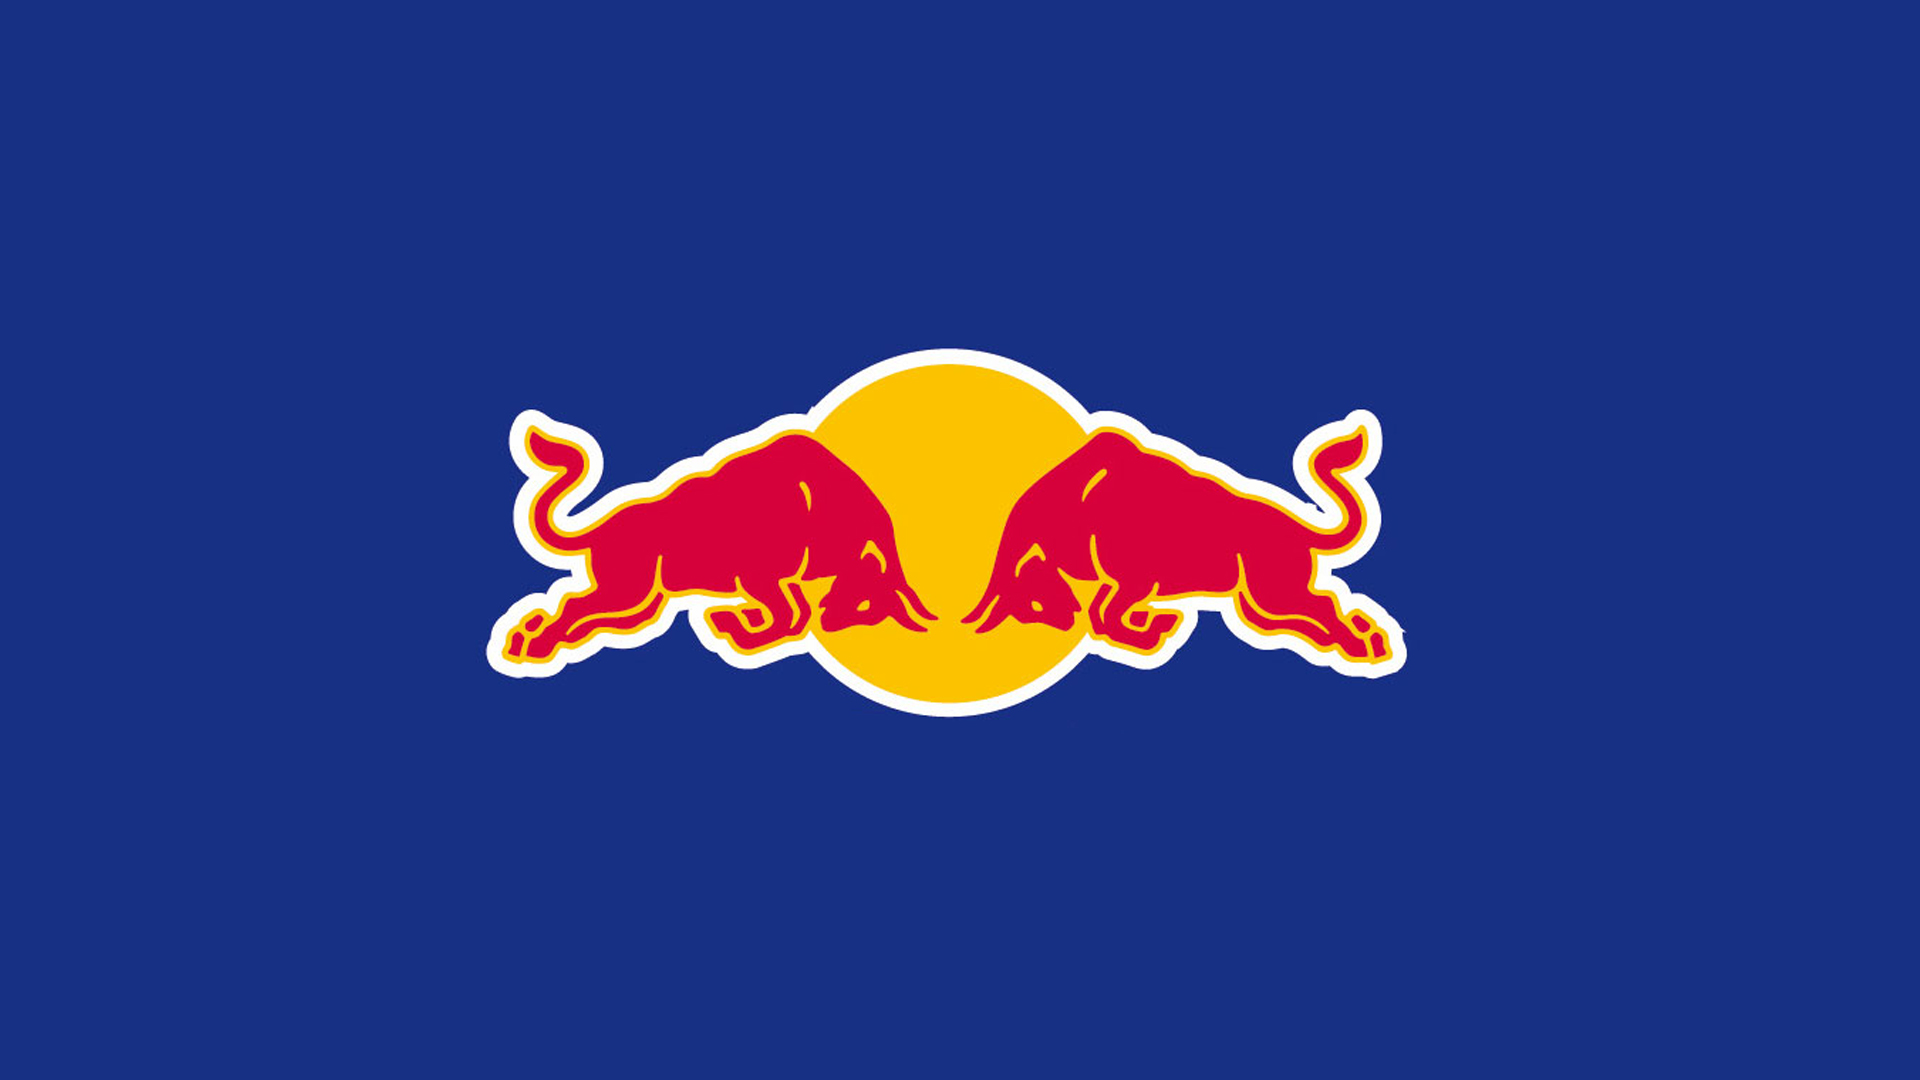 red-bull-picture-On-wallpaper-hd.jpg